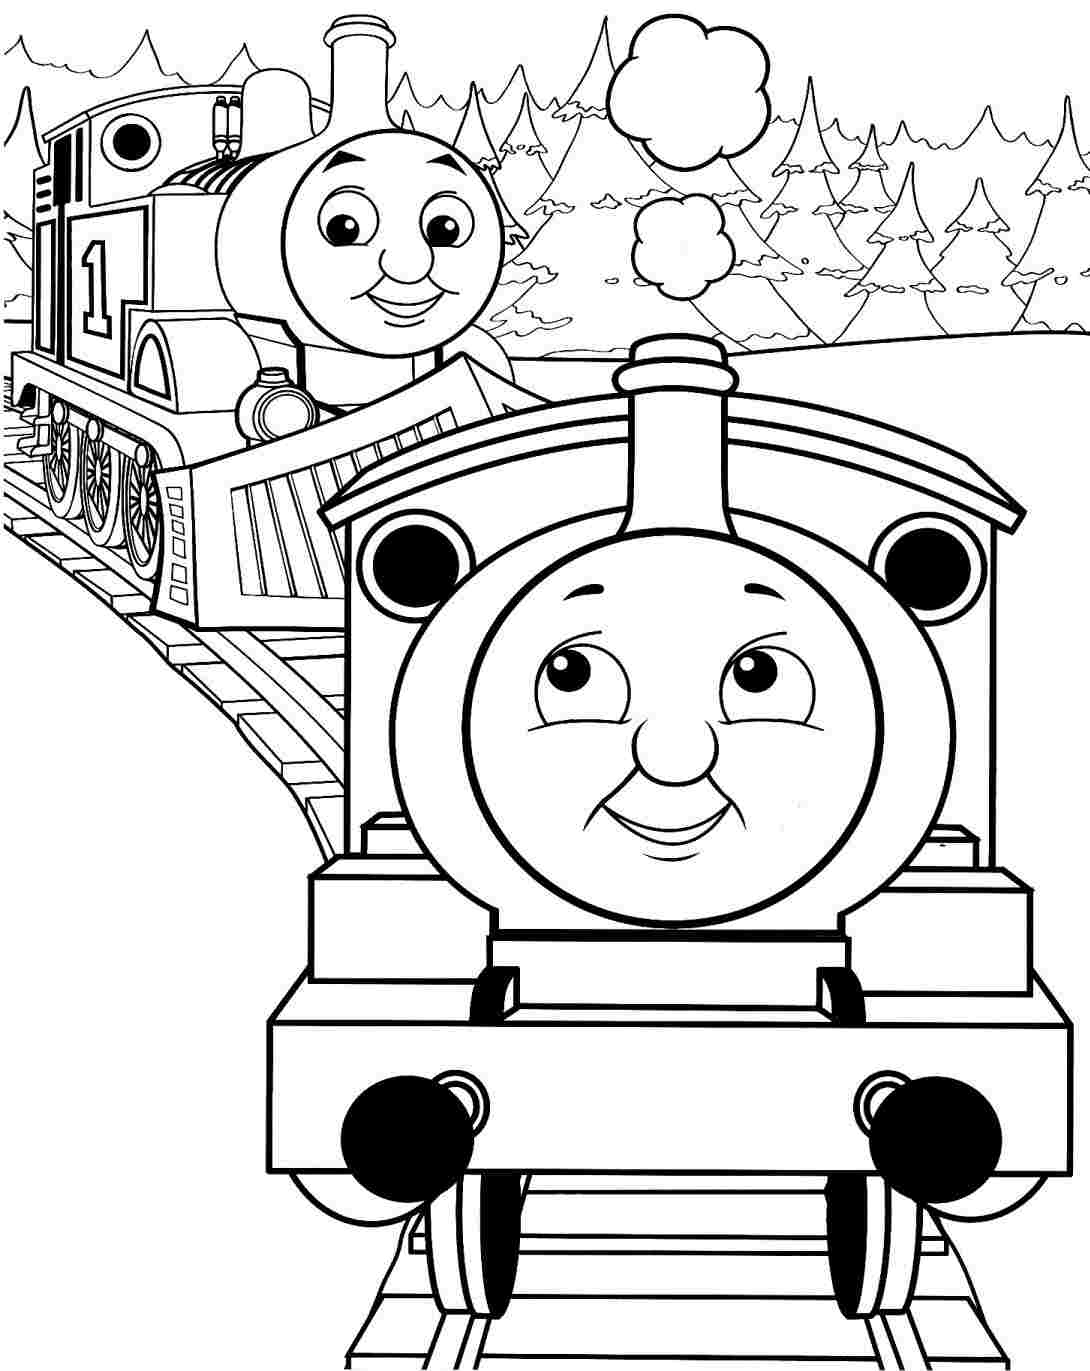 Free Thomas Coloring Pages at GetDrawings.com | Free for ...